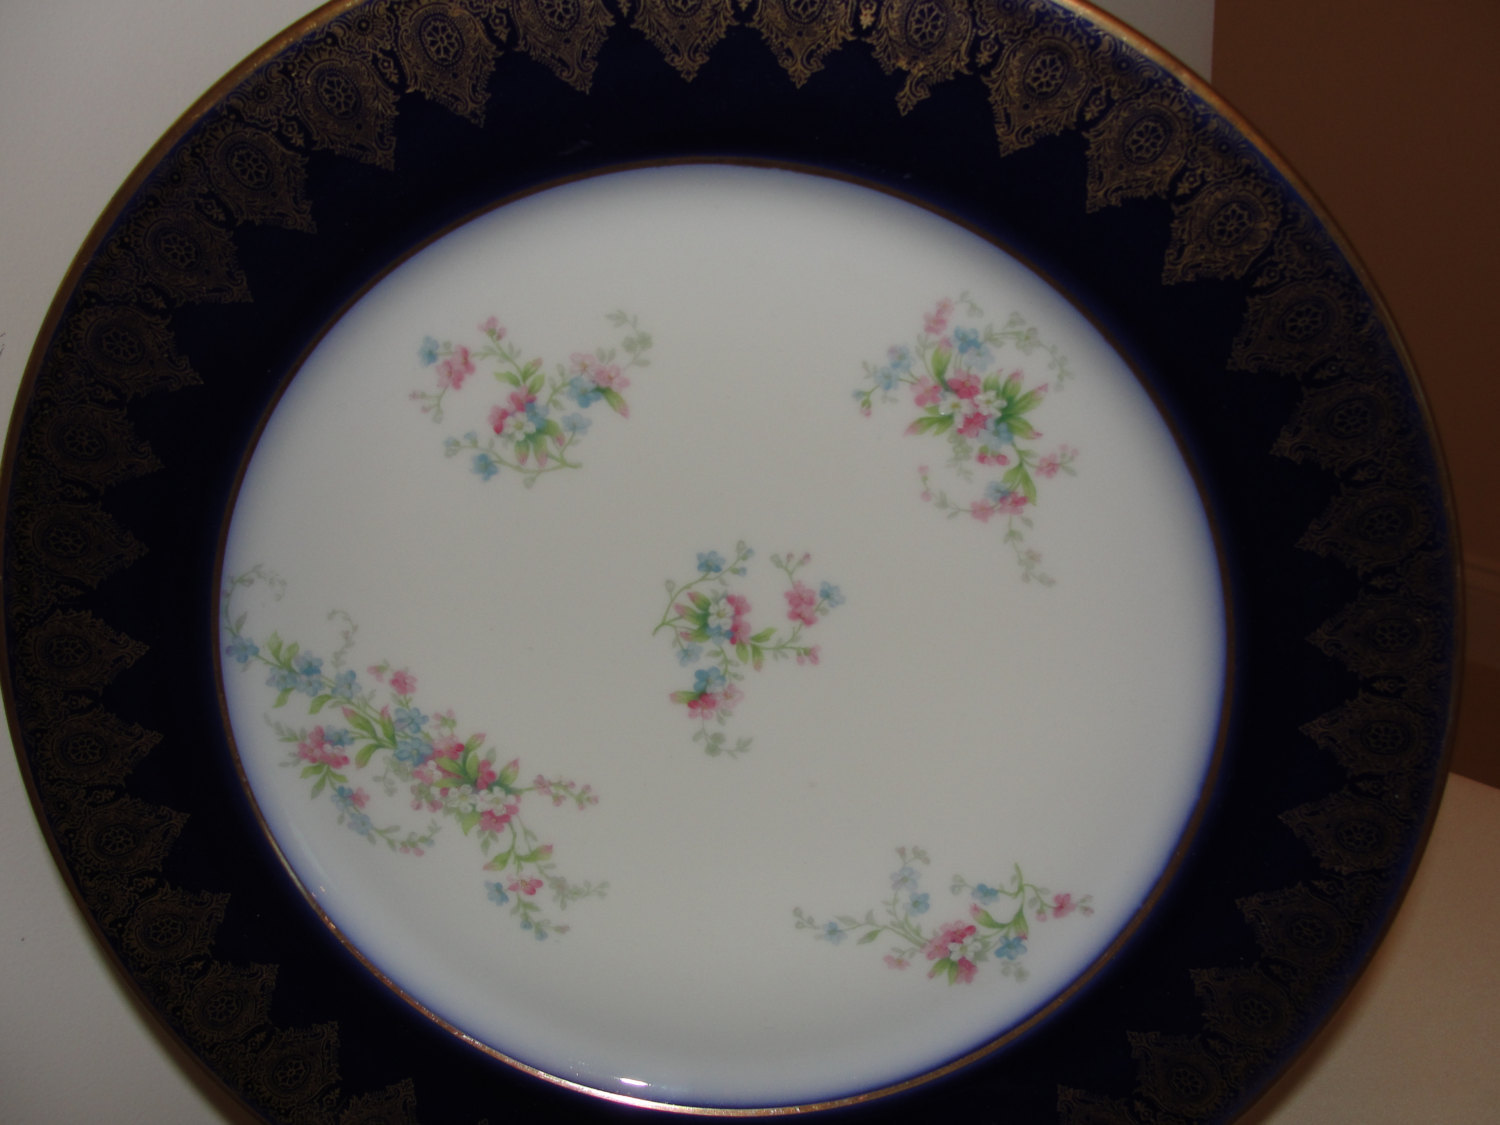 Primary image for Porcelain WIlliam Guerin & Co. Limoges France Gold and Cobalt Blue Charger Plate